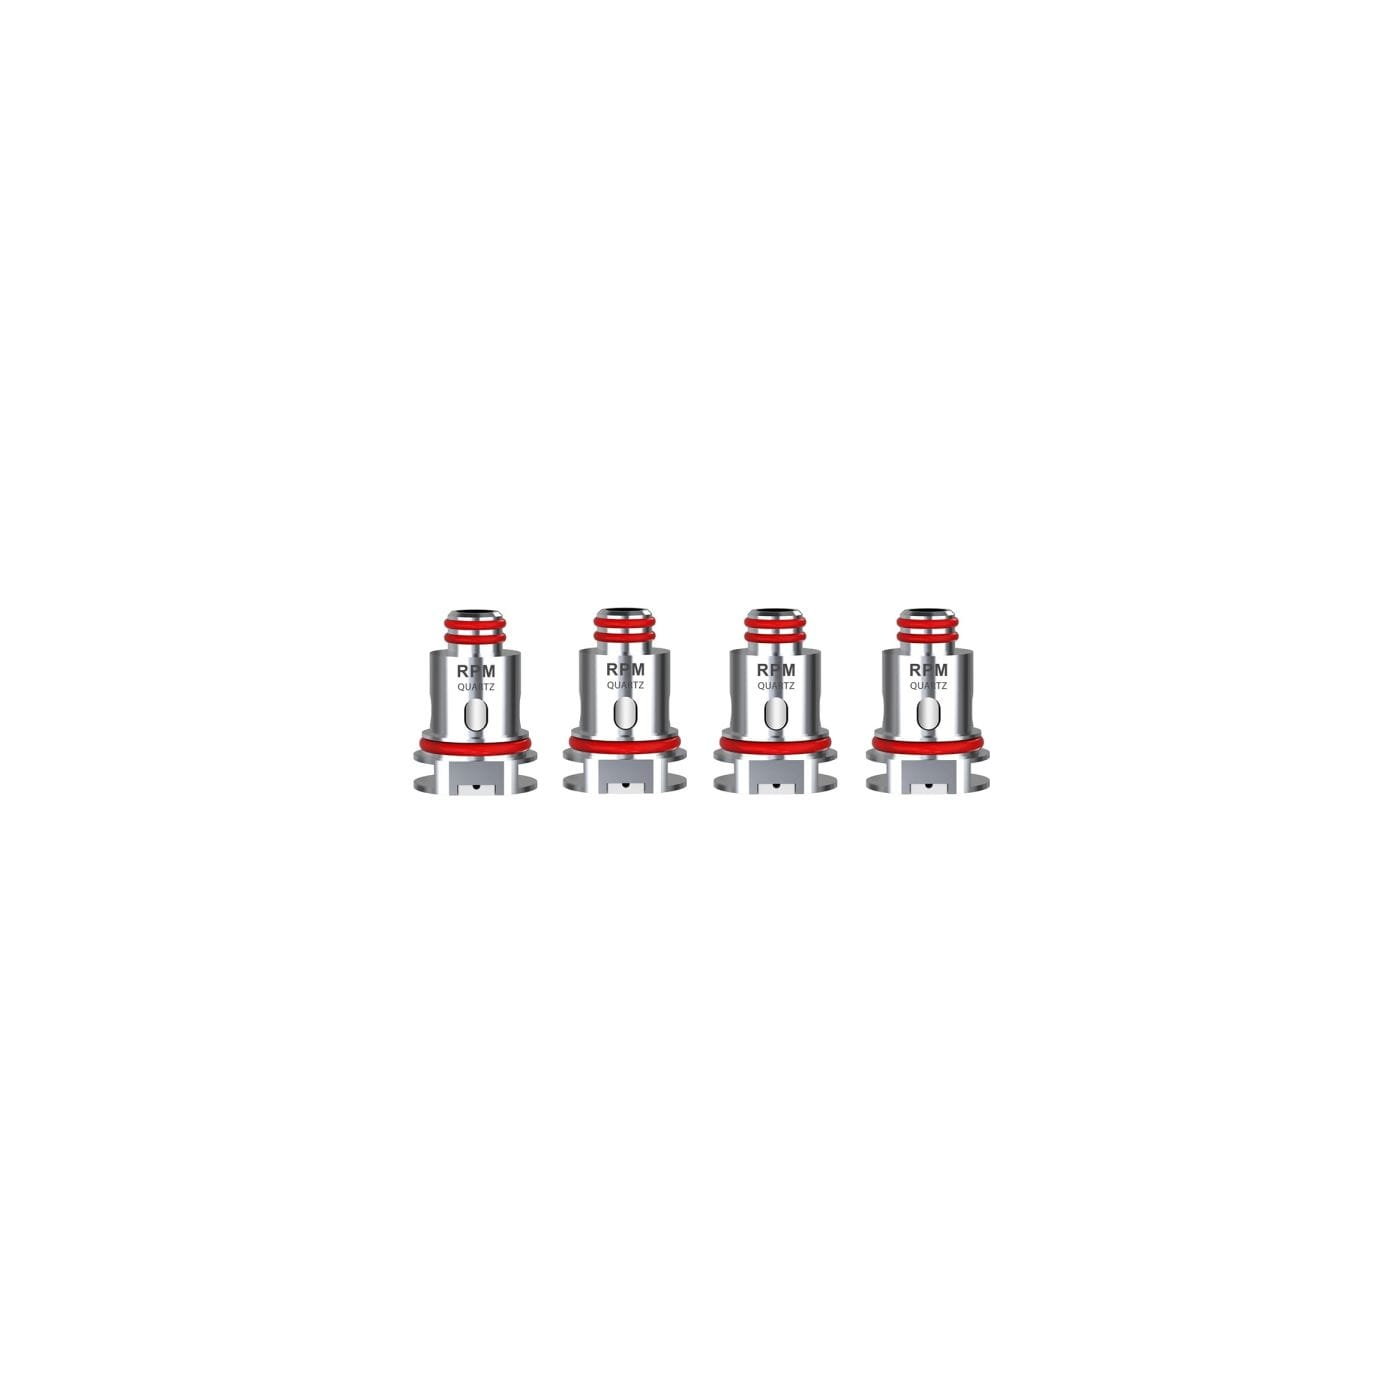 Smok RPM Quartz Replacement Coil - 5 Pack